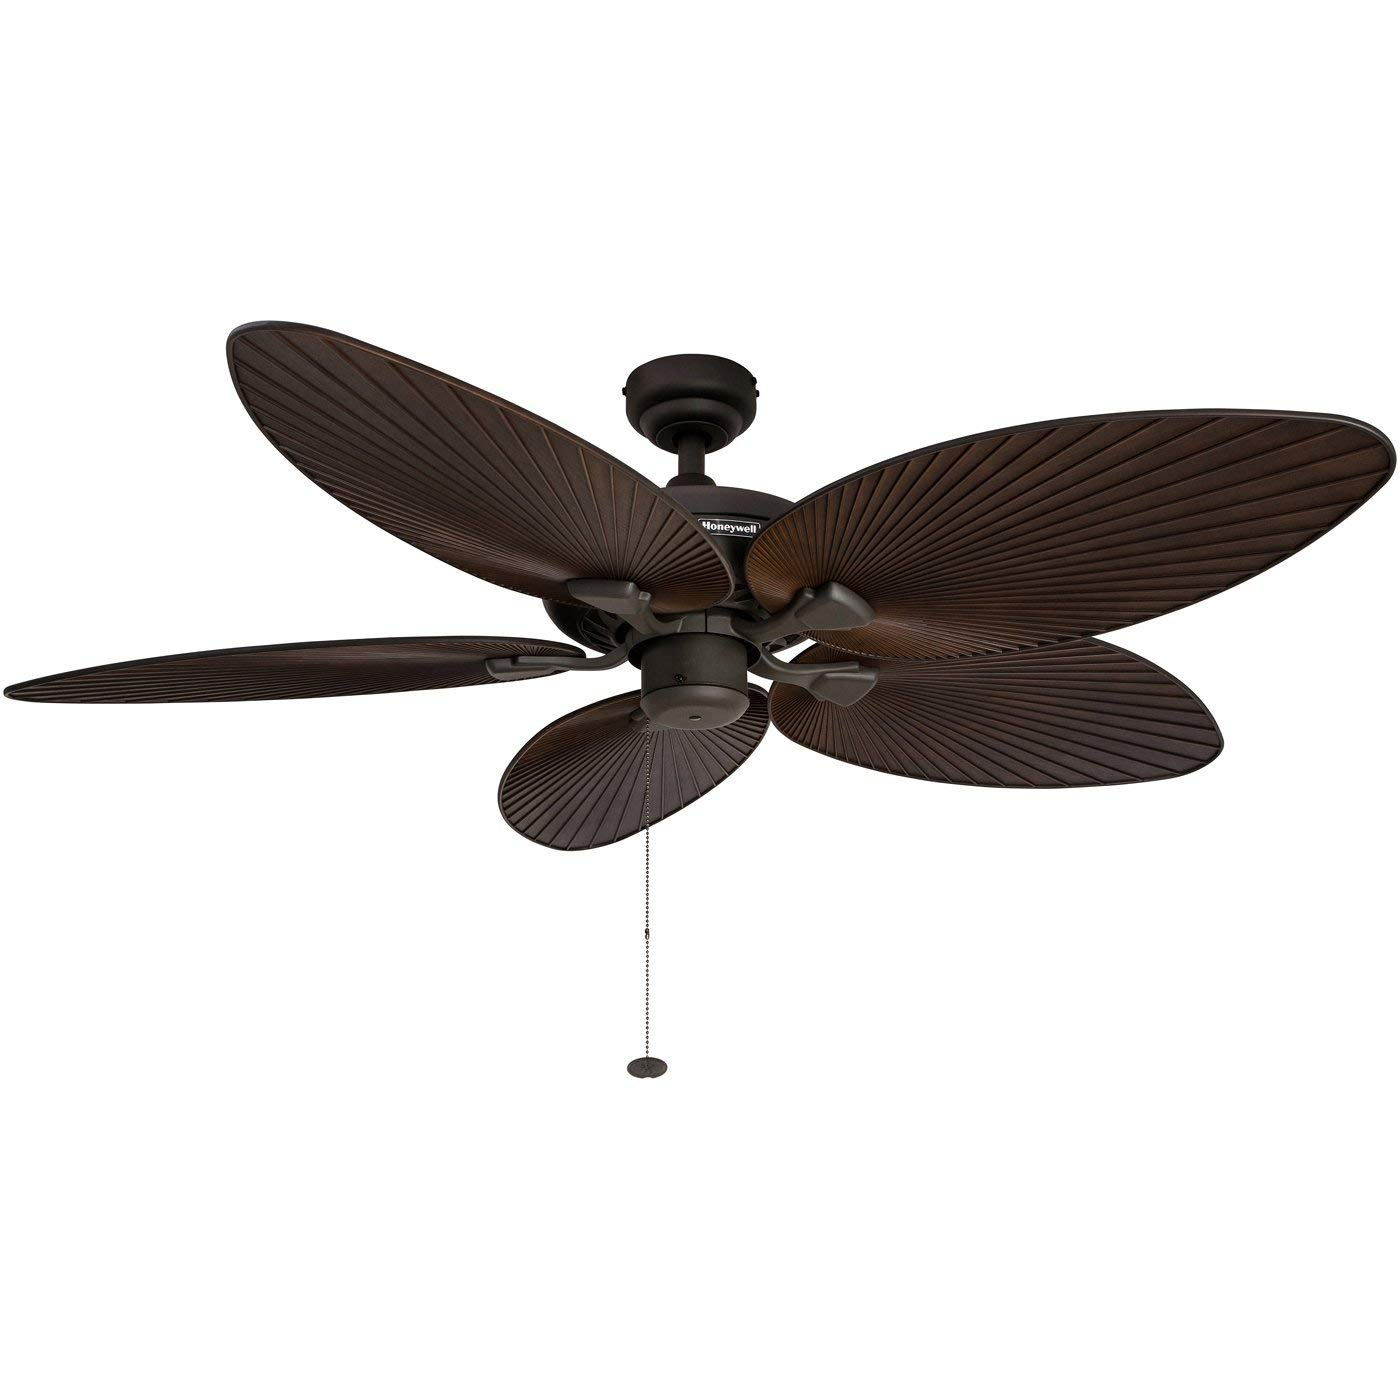 Honeywell Palm Island 52-Inch Tropical Ceiling Fan, Five Palm Leaf Blades, Indoor Outdoor, Damp Rated, Bronze Renewed